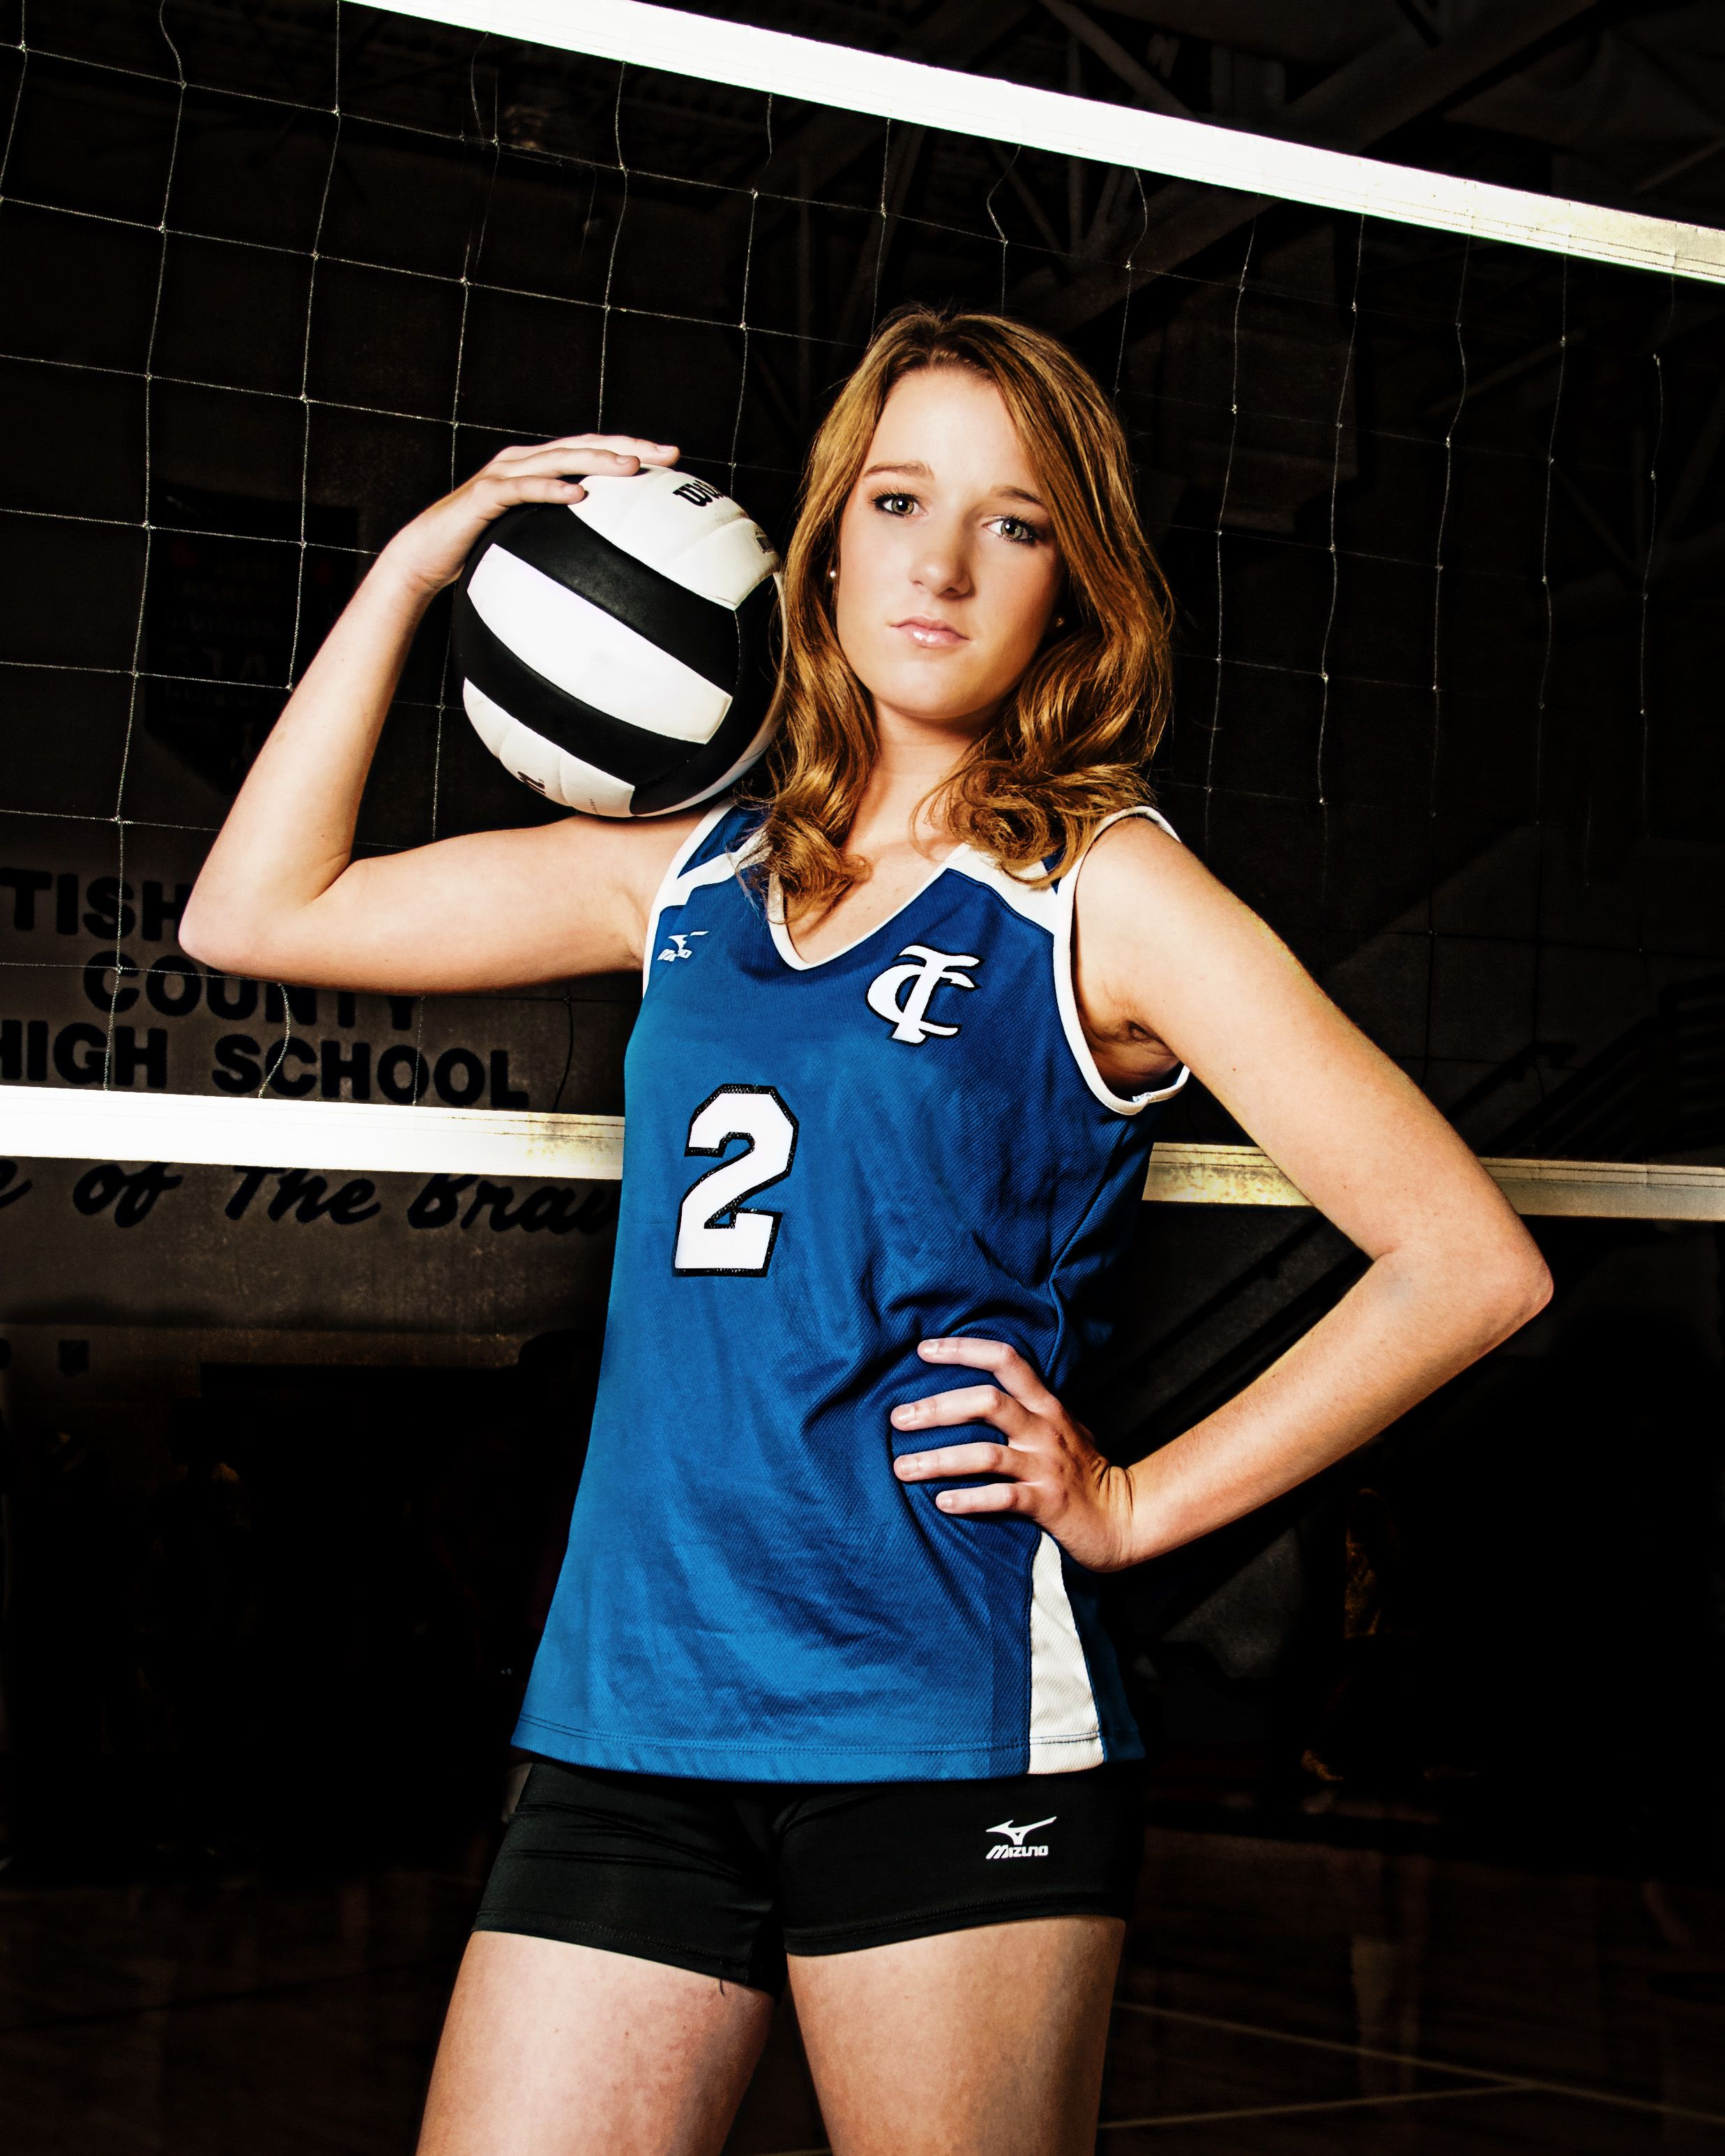 Volleyball Senior Pic Mcrae Photoart Volleyball Photos Volleyball Senior Pictures Sports Illustrated Swimsuit Models